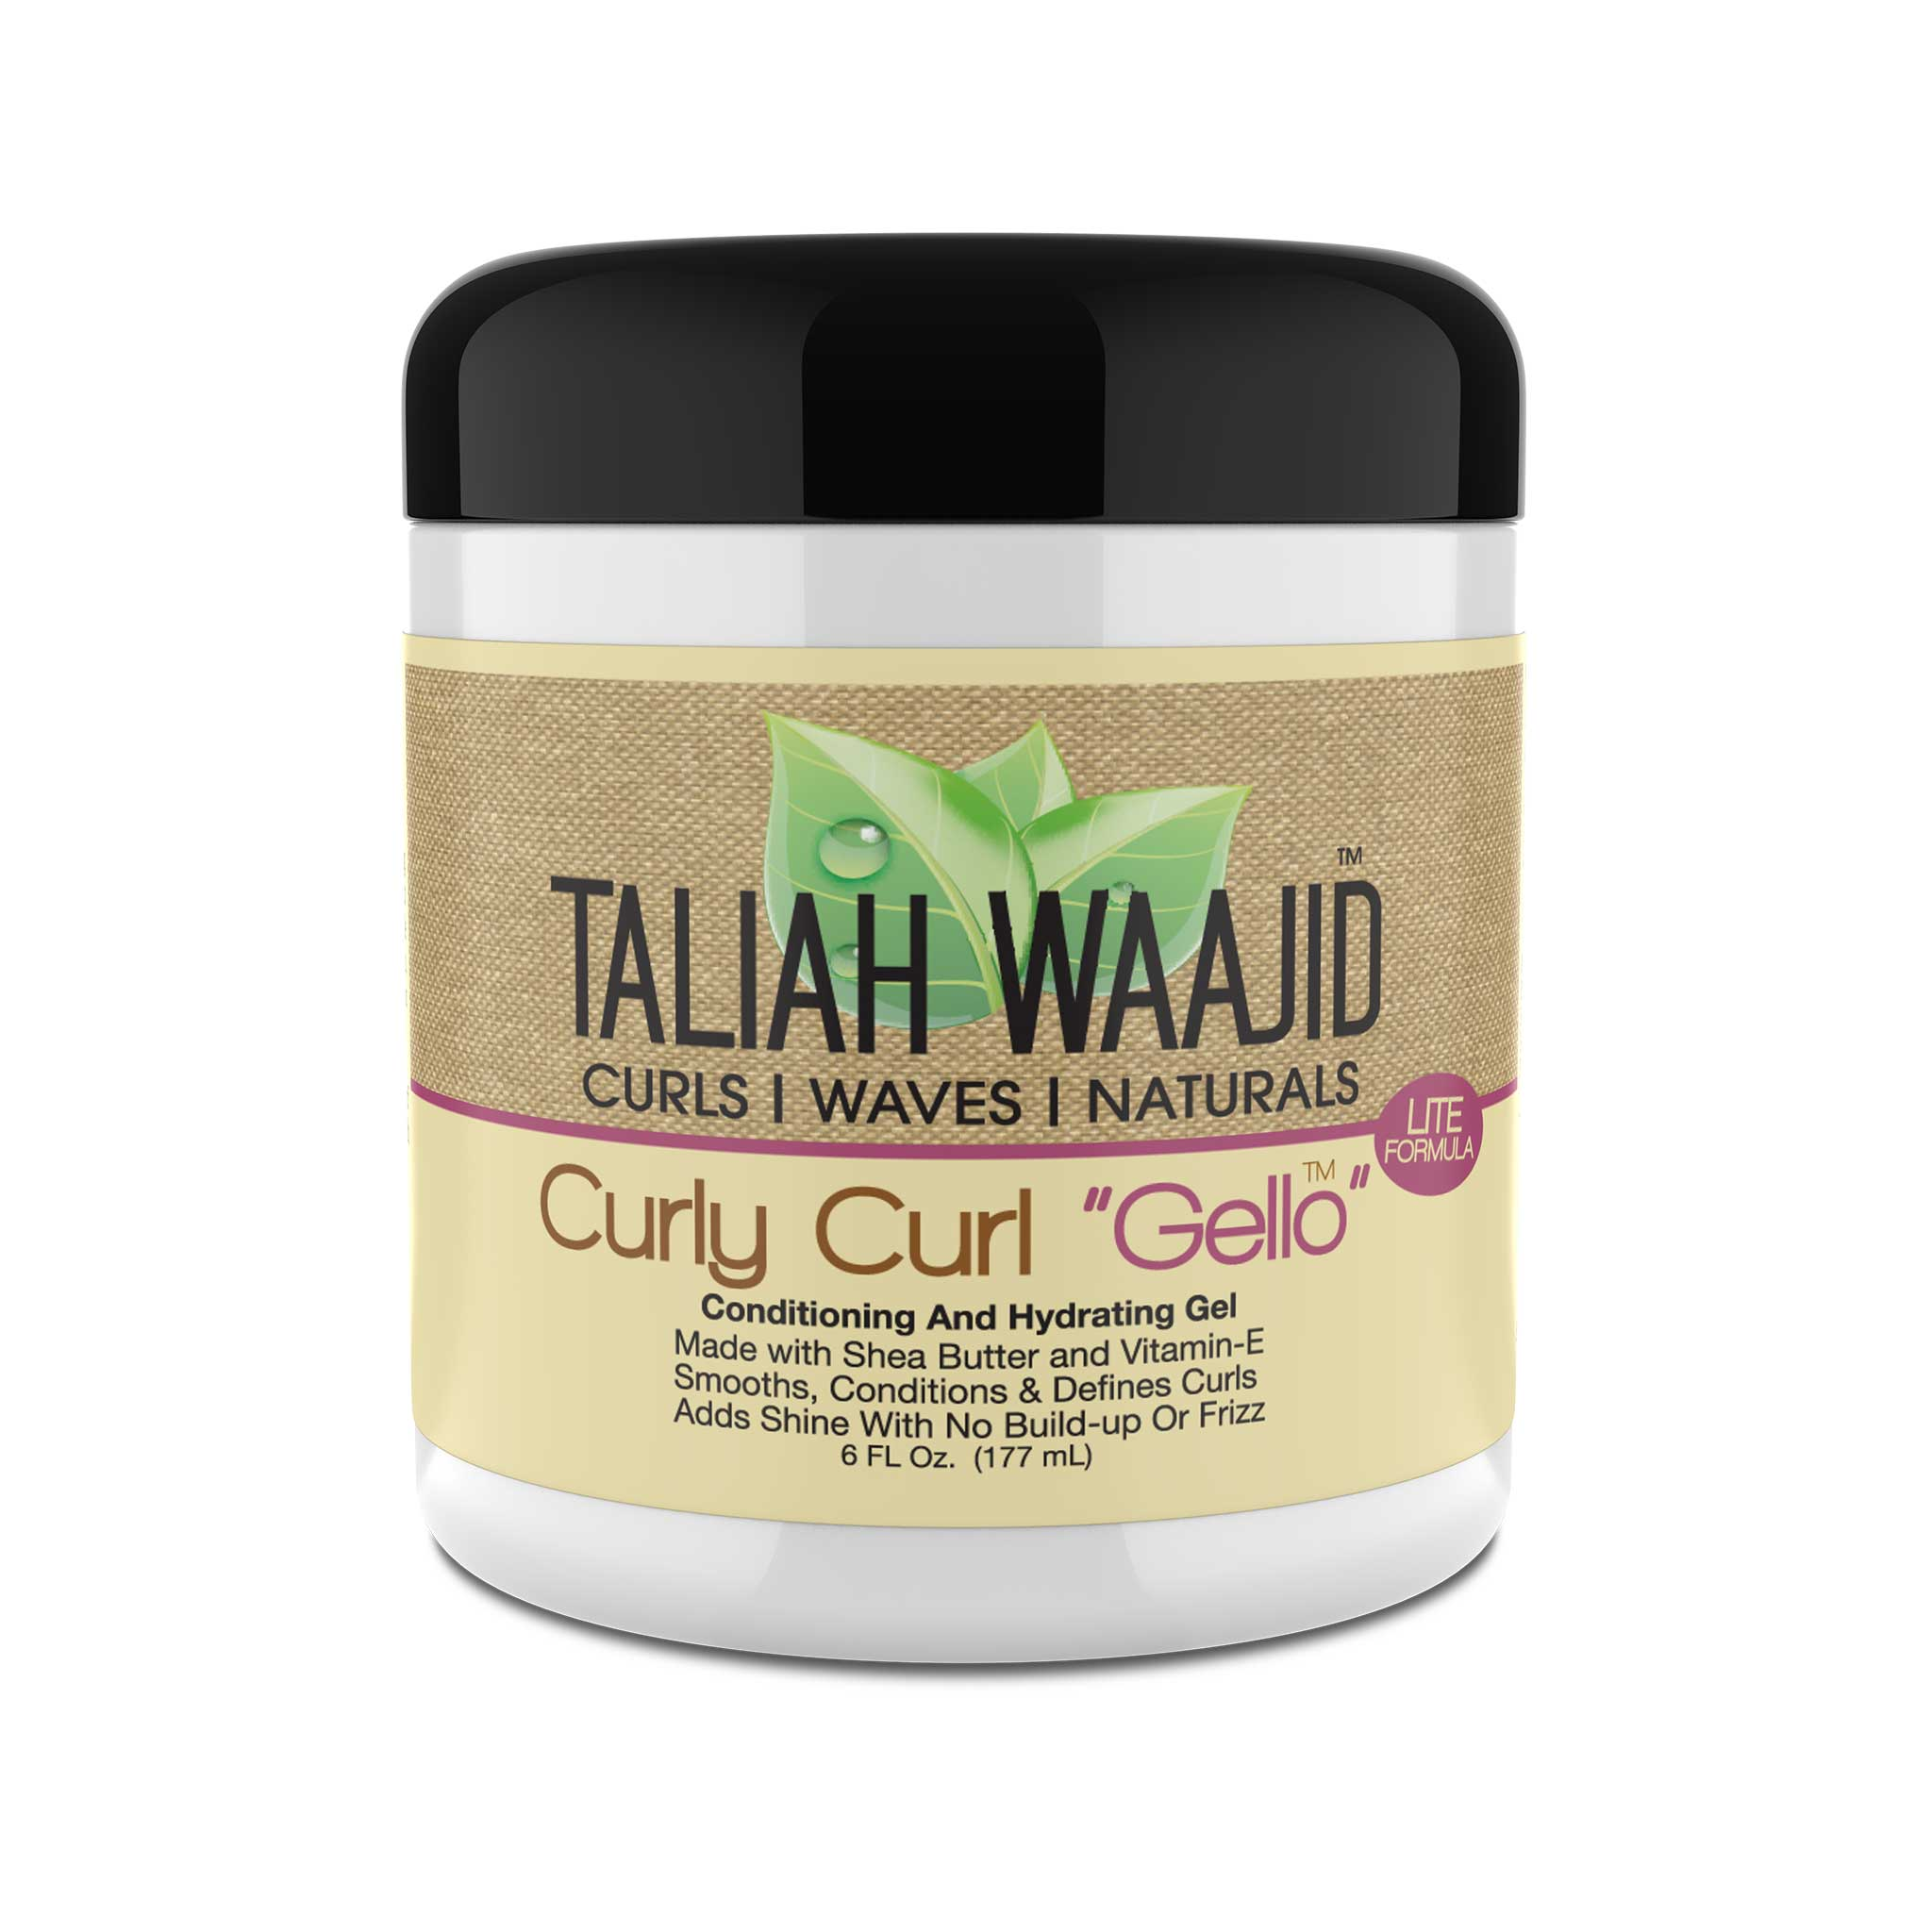 "Curls, Waves & Naturals Curly Curl ""Gello"" 6oz"